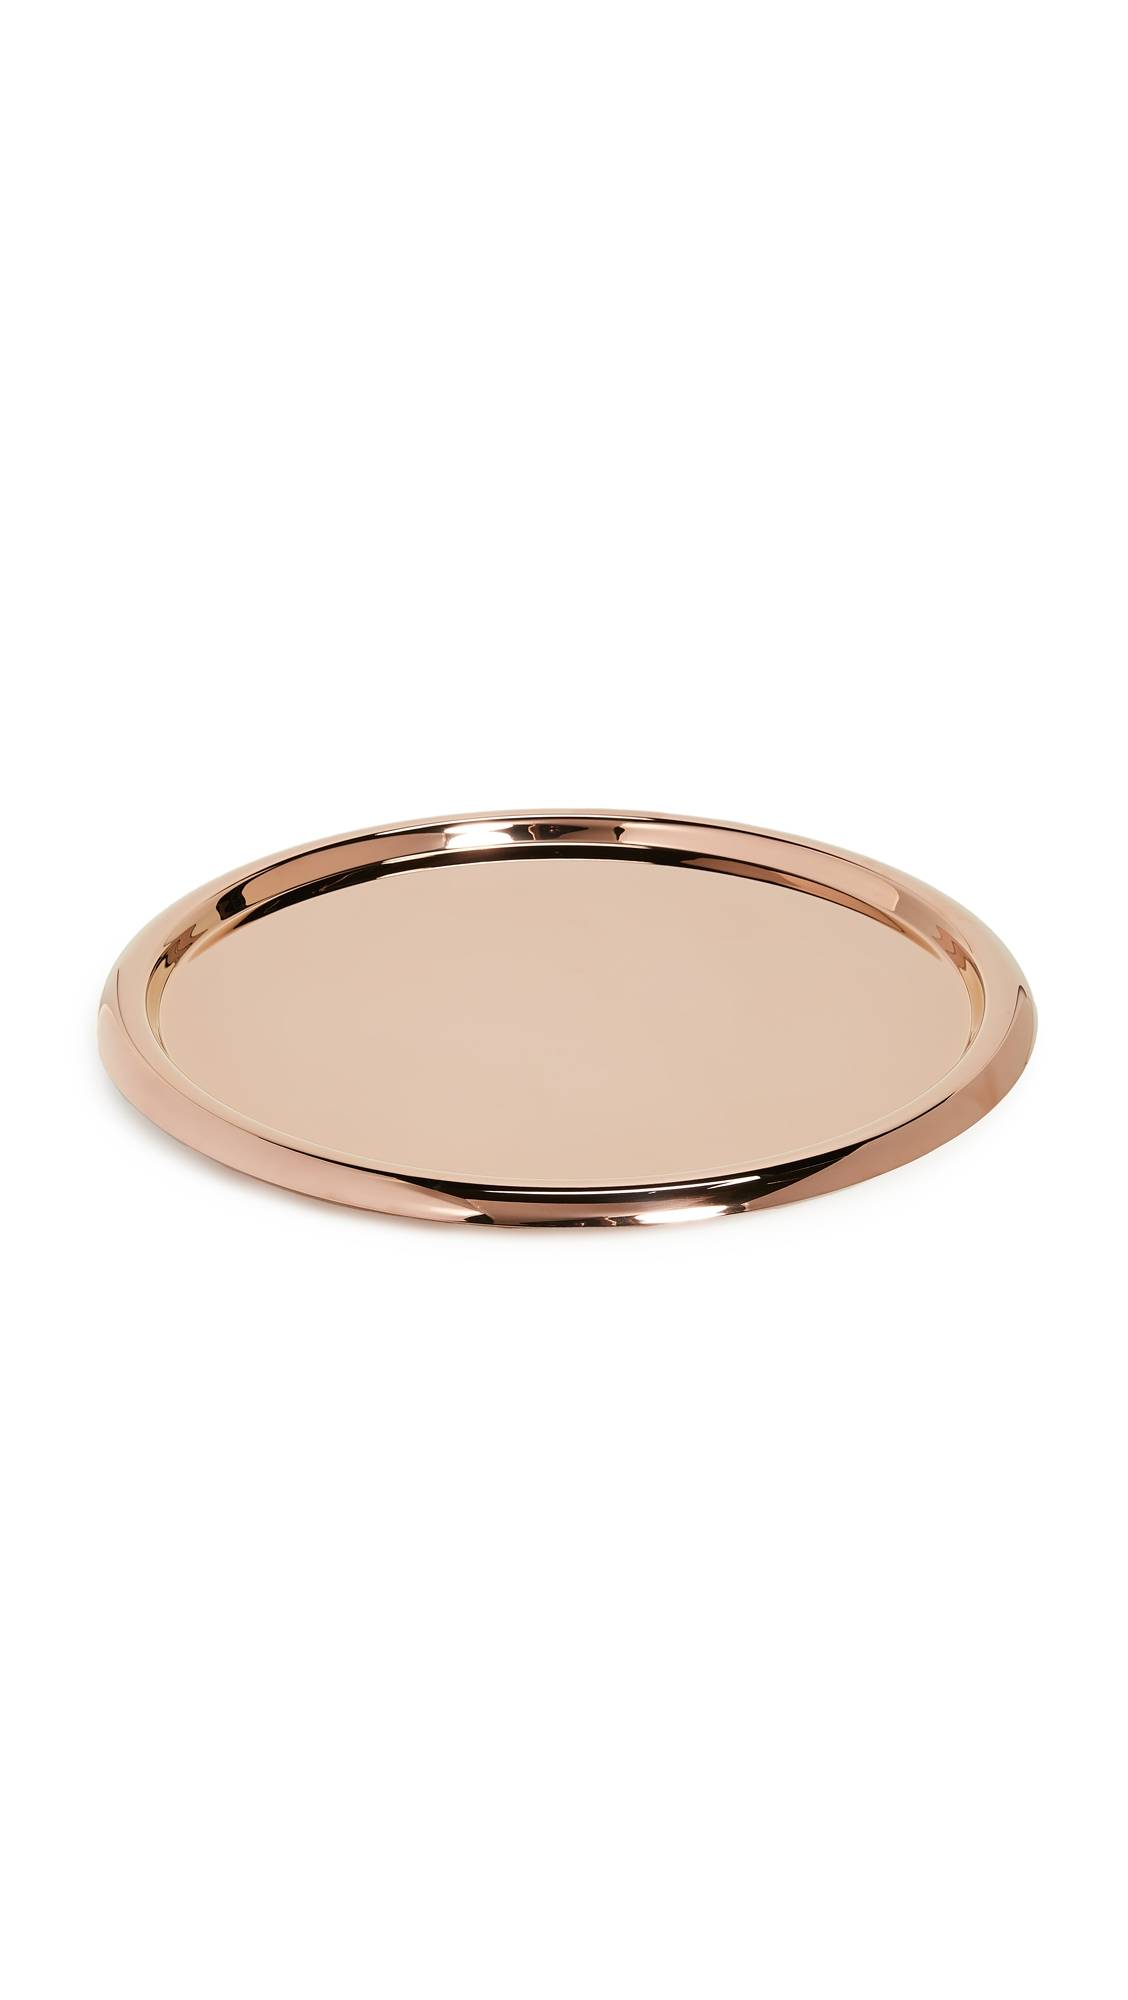 Tom Dixon Brew Tray - Copper - Size: One Size